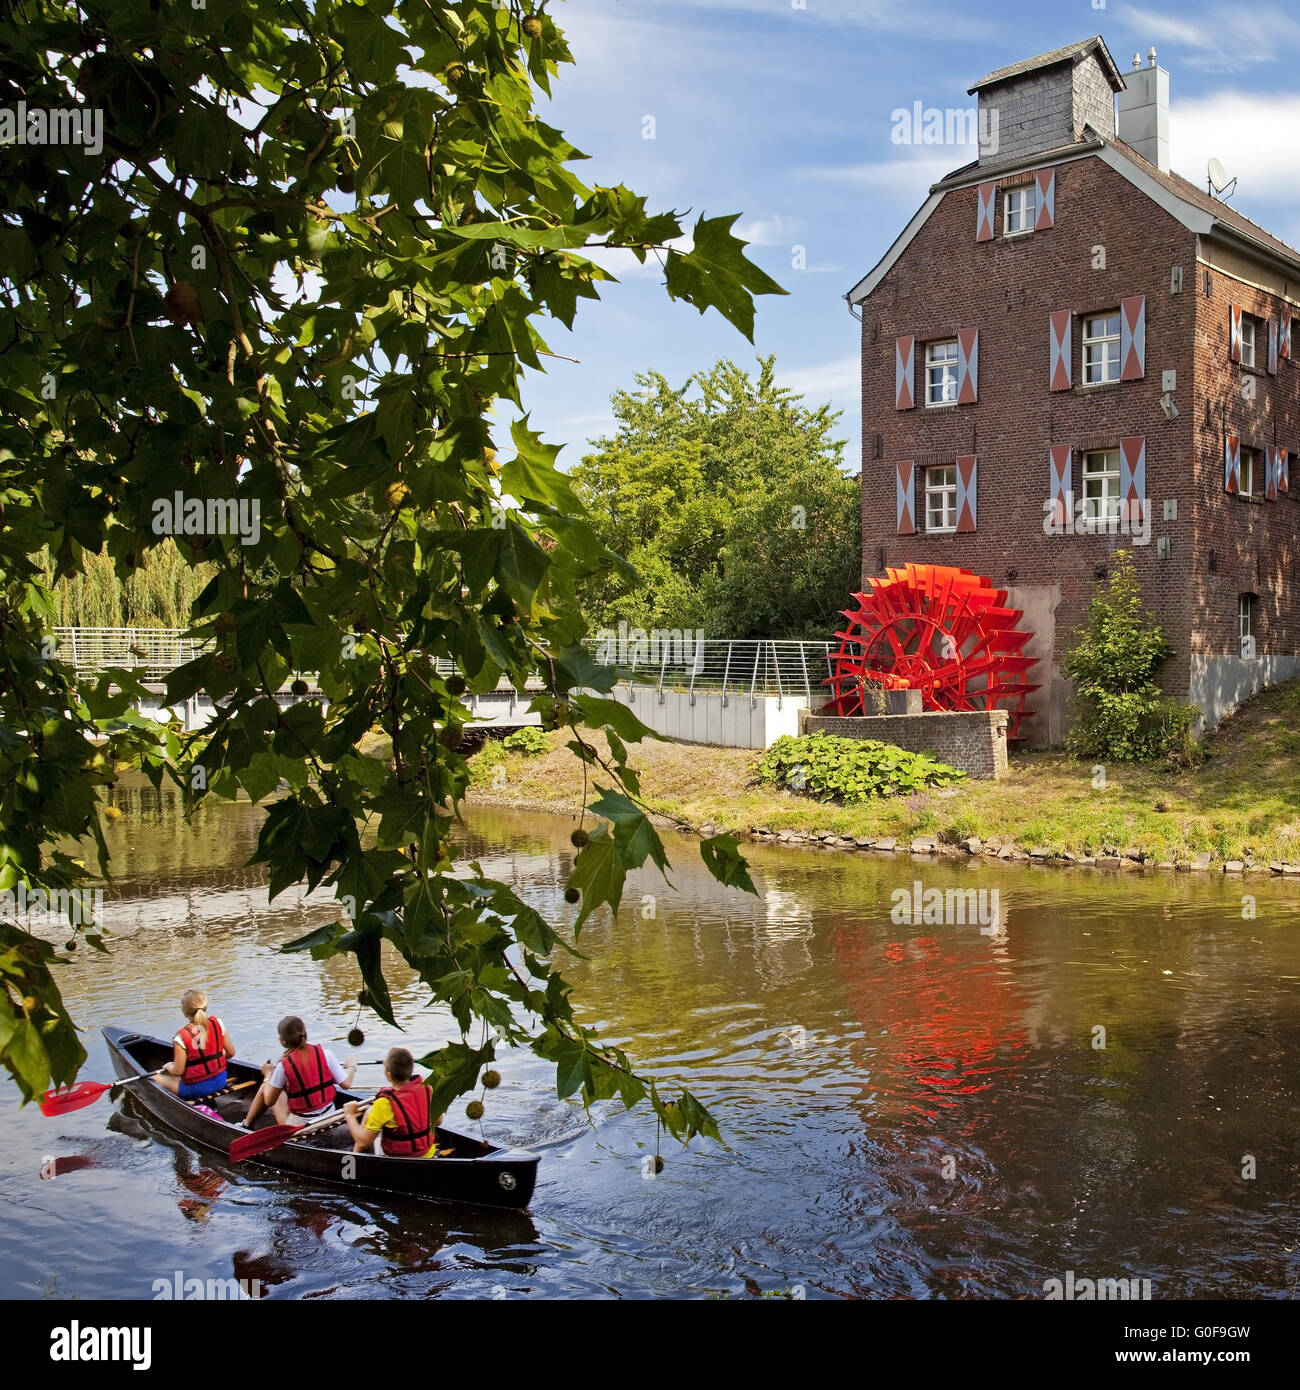 Canoeist on the Niers with Susmuehle, Goch Germany - Stock Image